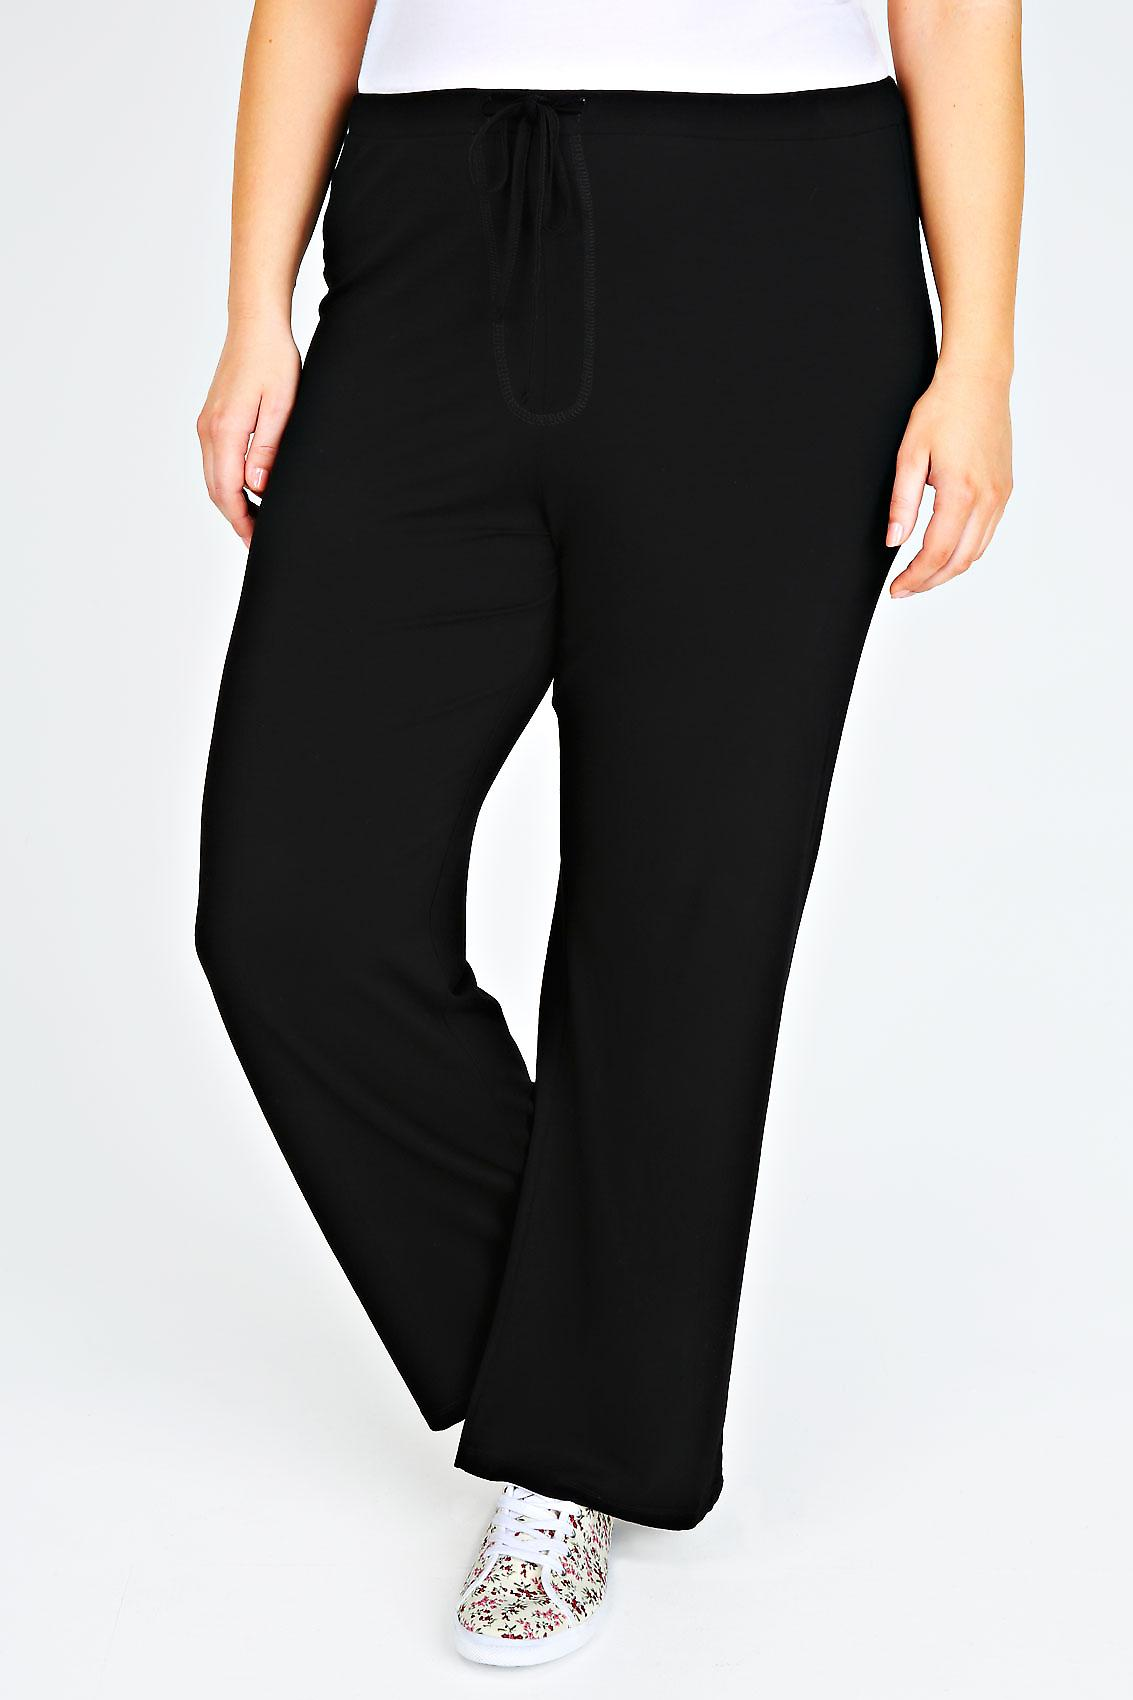 Black Yoga Pants: A Must Have For Every Wardrobe